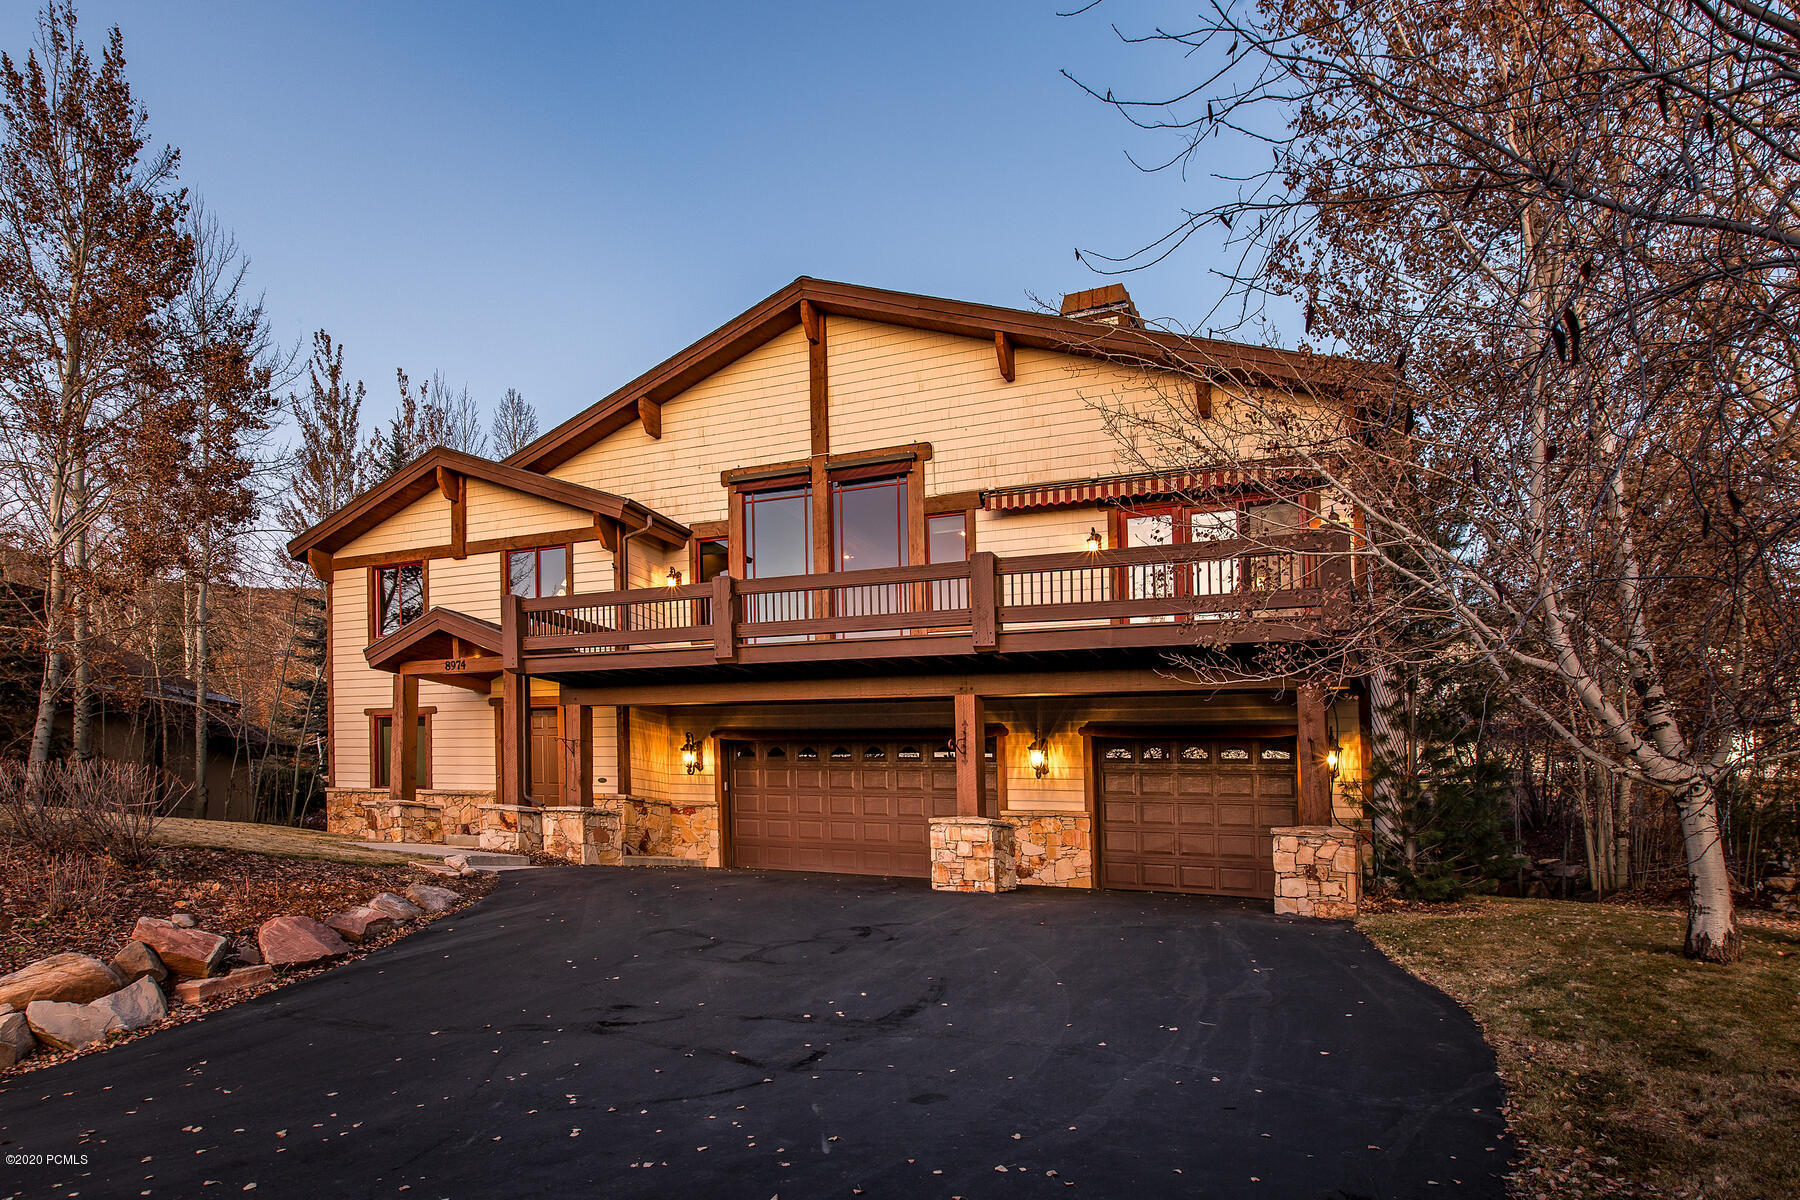 8974 Sackett Drive, Park City, Utah 84098, 5 Bedrooms Bedrooms, ,5 BathroomsBathrooms,Single Family,For Sale,Sackett,12004334